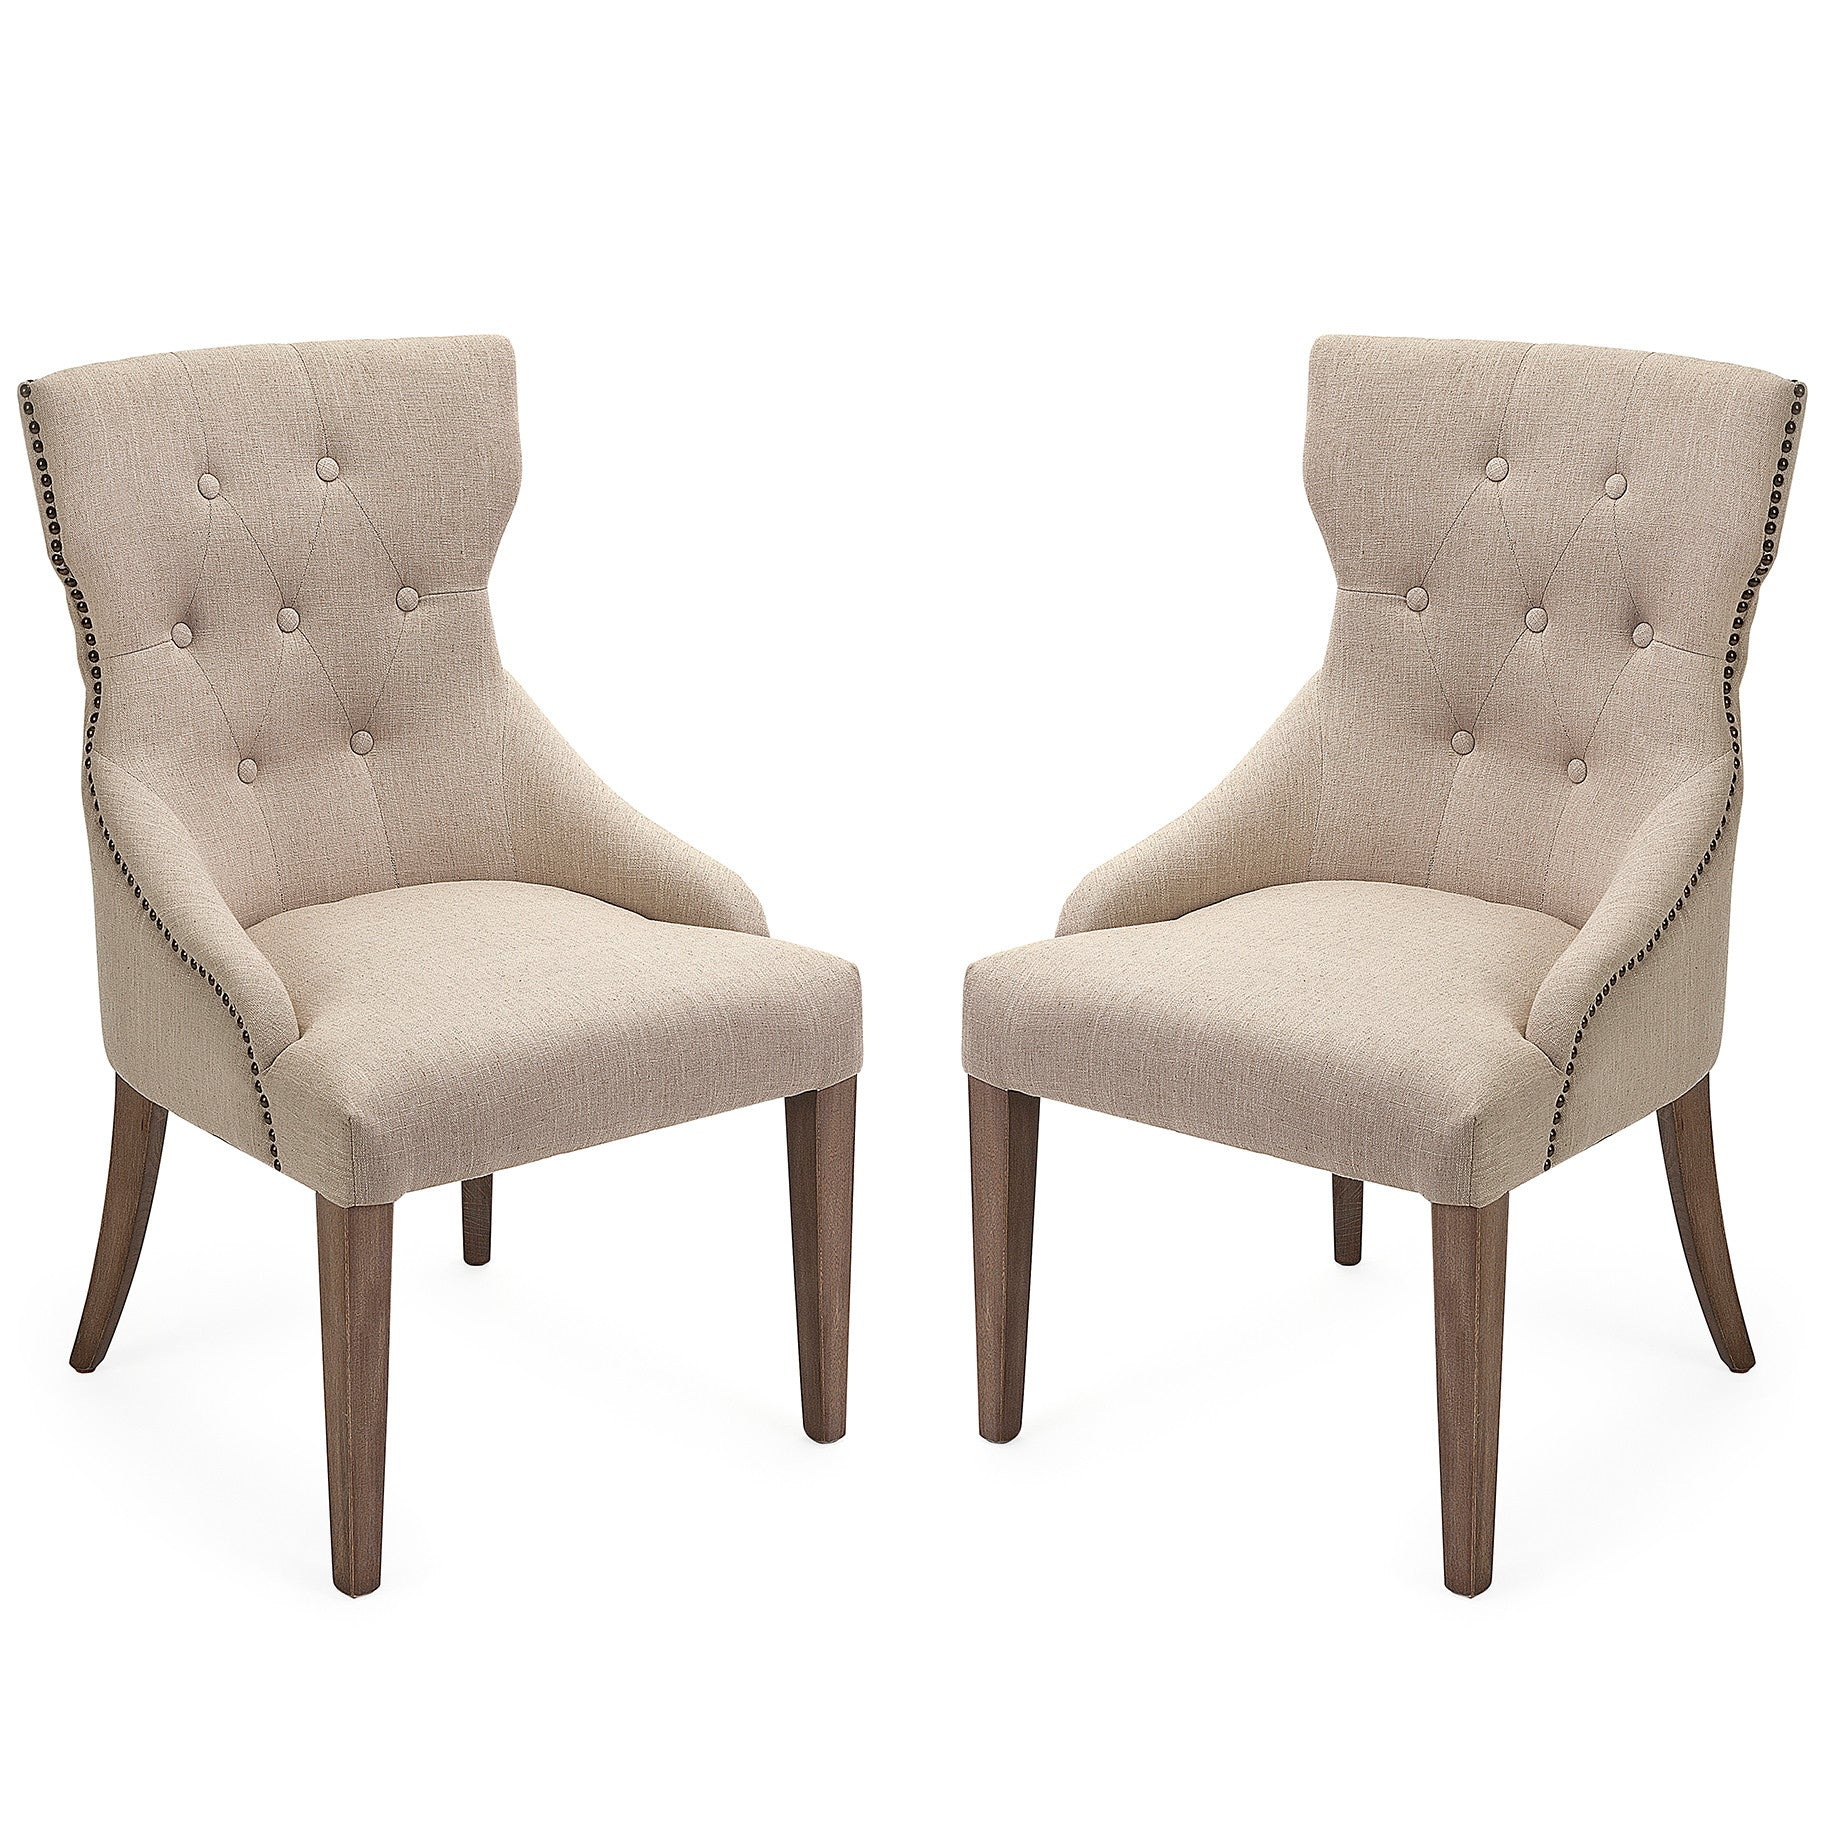 Tufted Linen Shabby Chic Nailhead Trim Dining Chairs Set of 2